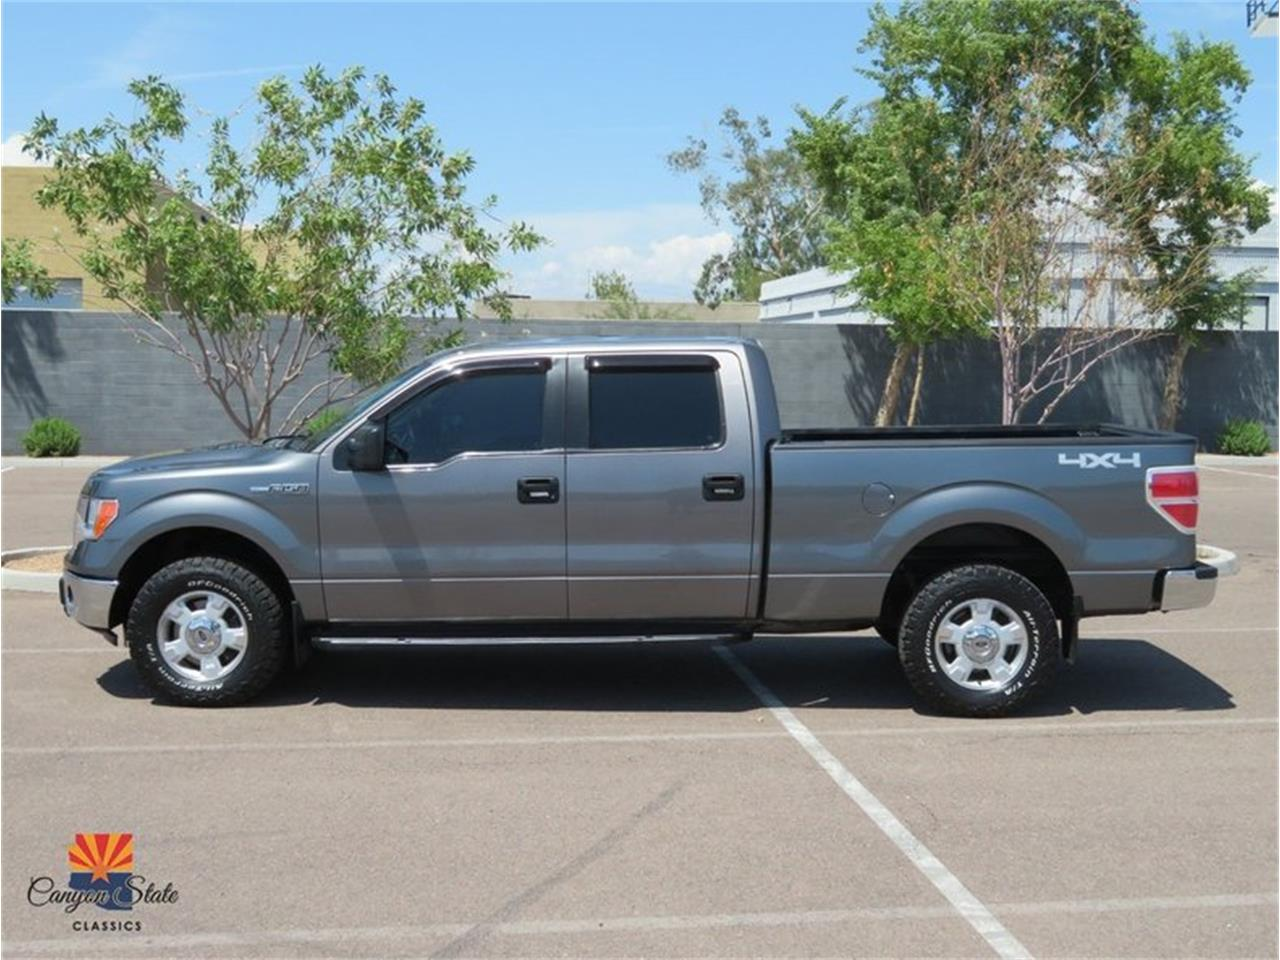 2014 Ford F150 for sale in Tempe, AZ – photo 6